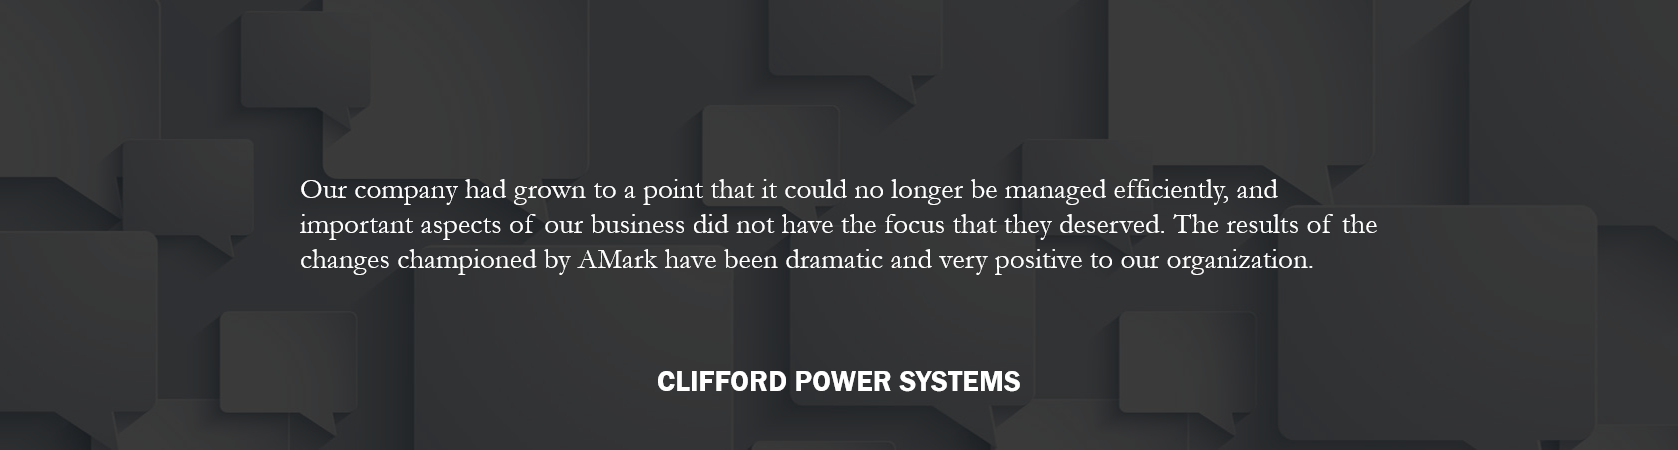 Clifford Power Systems.png